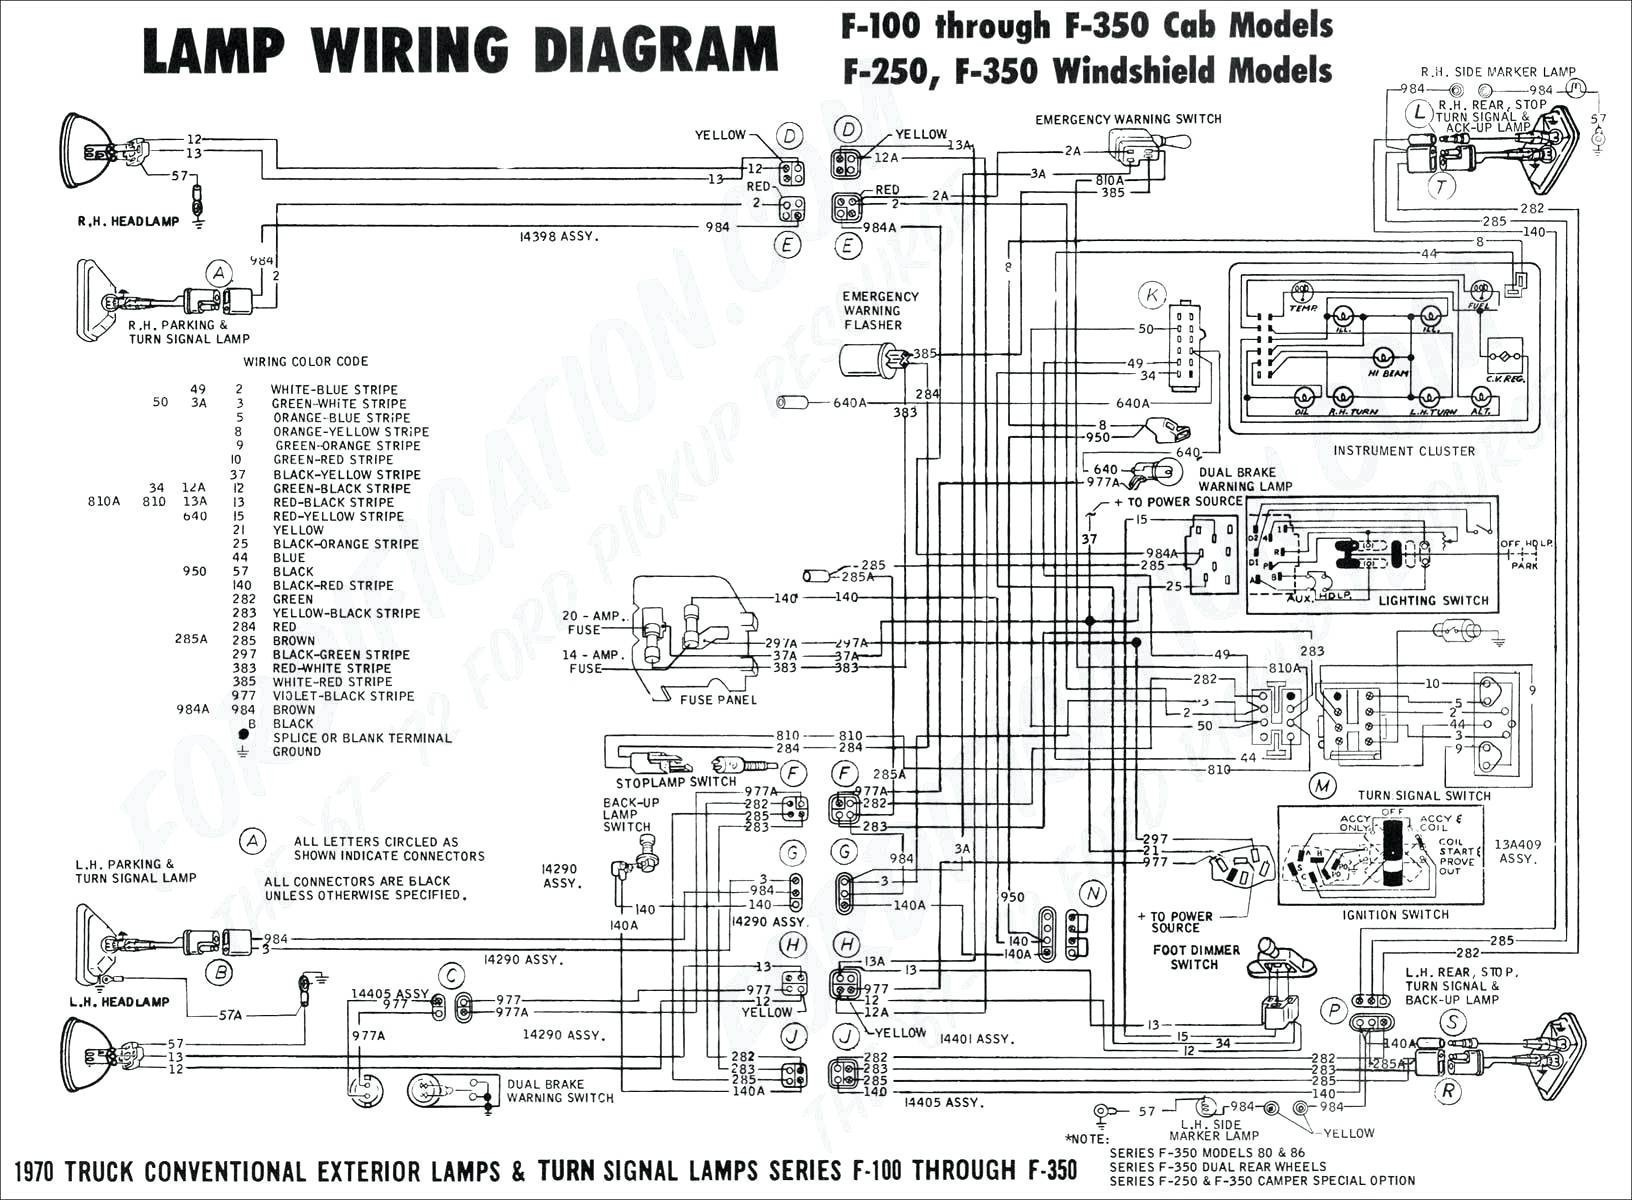 2010 Chrysler town and Country Engine Diagram 2006 Audi A4 Speaker Wiring Diagram Worksheet and Wiring Diagram • Of 2010 Chrysler town and Country Engine Diagram